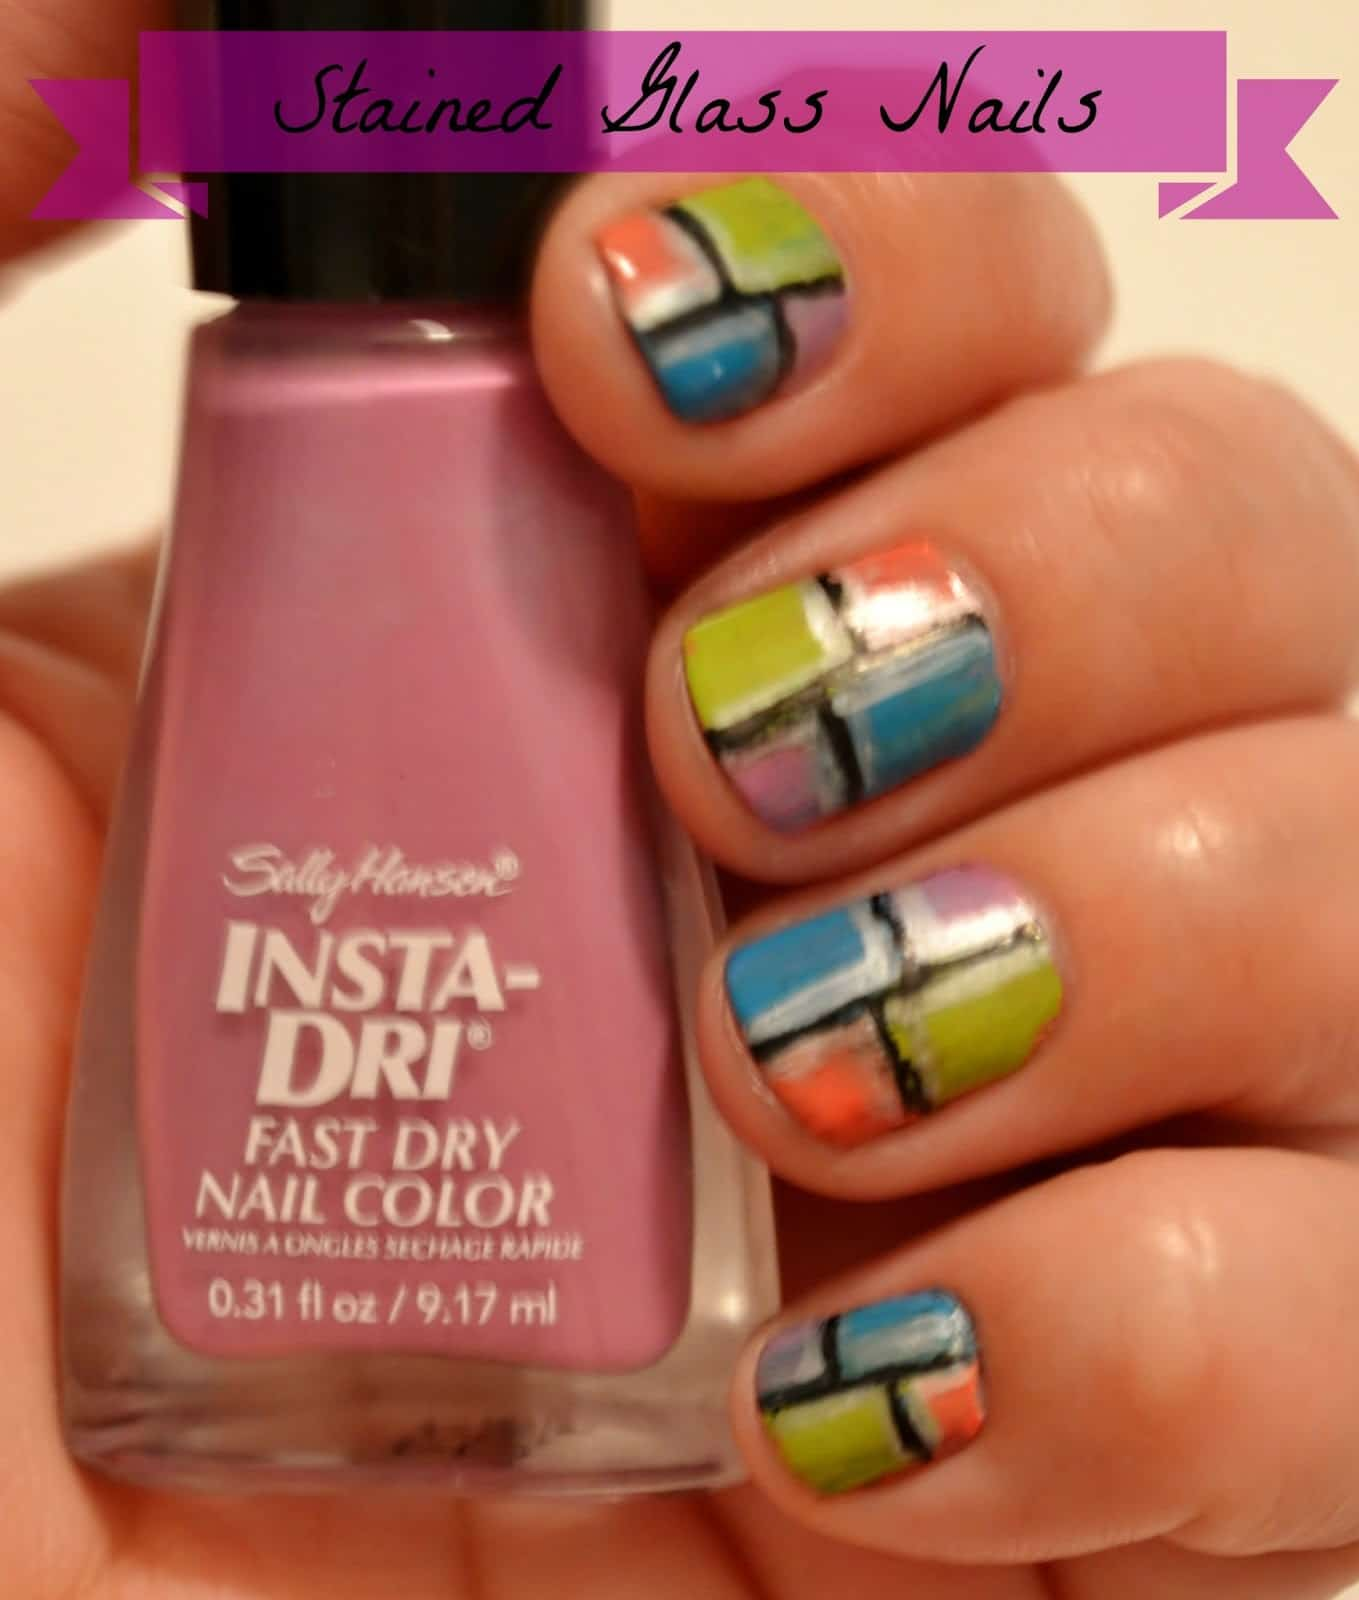 Makeup Monday} Stained Glass Nails - As The Bunny Hops®